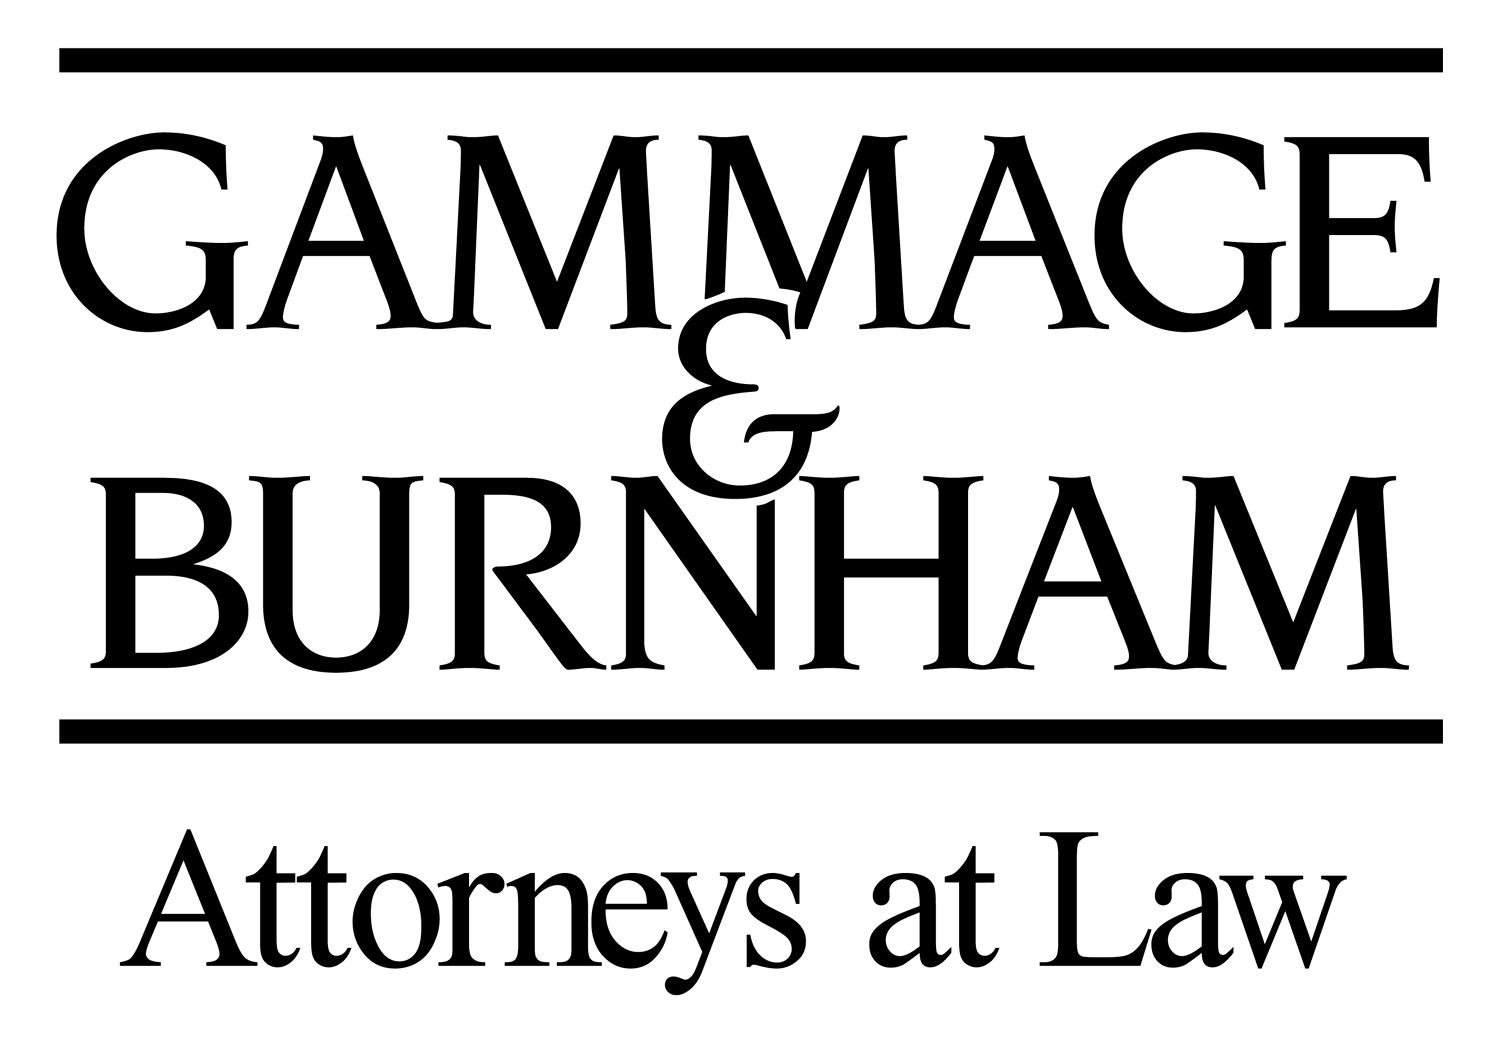 Gammage and Burnham logo